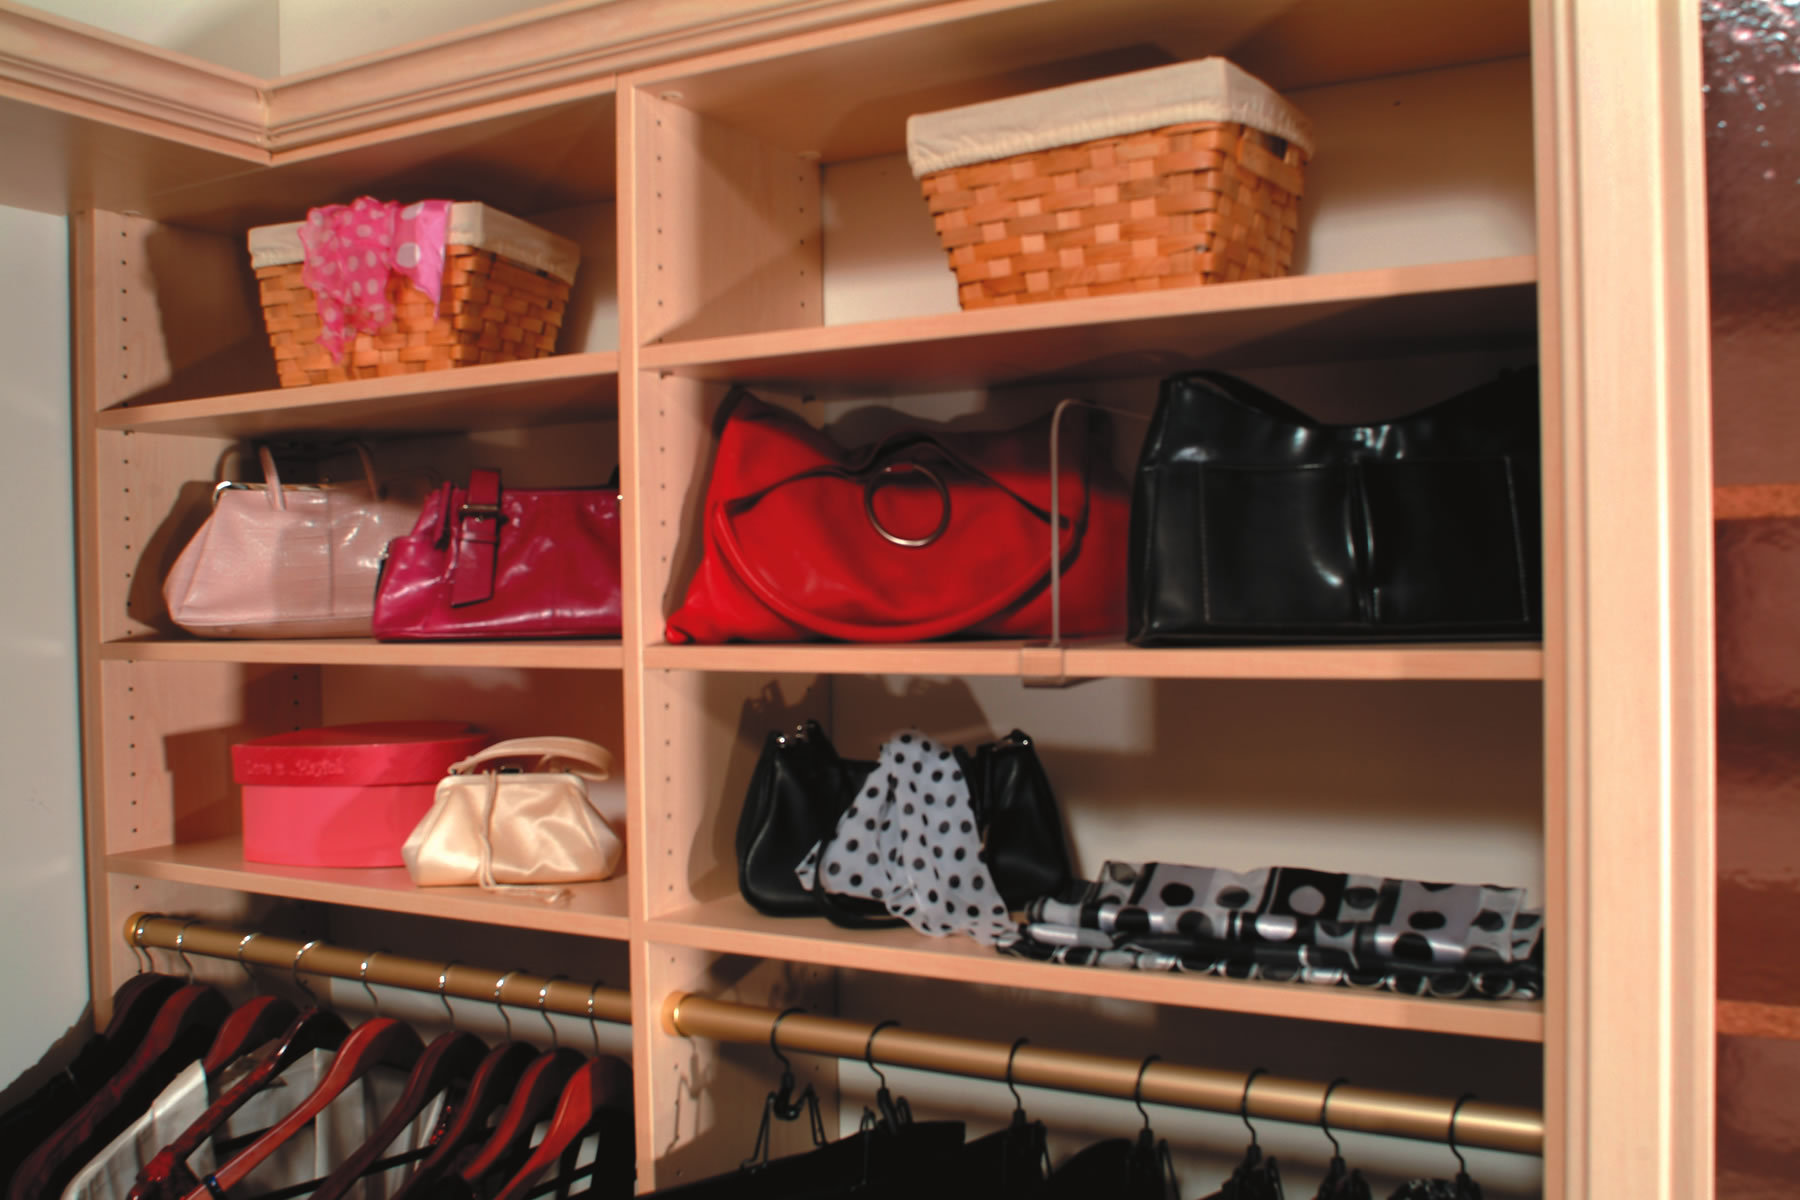 Custom built cubbies with handbags neatly placed